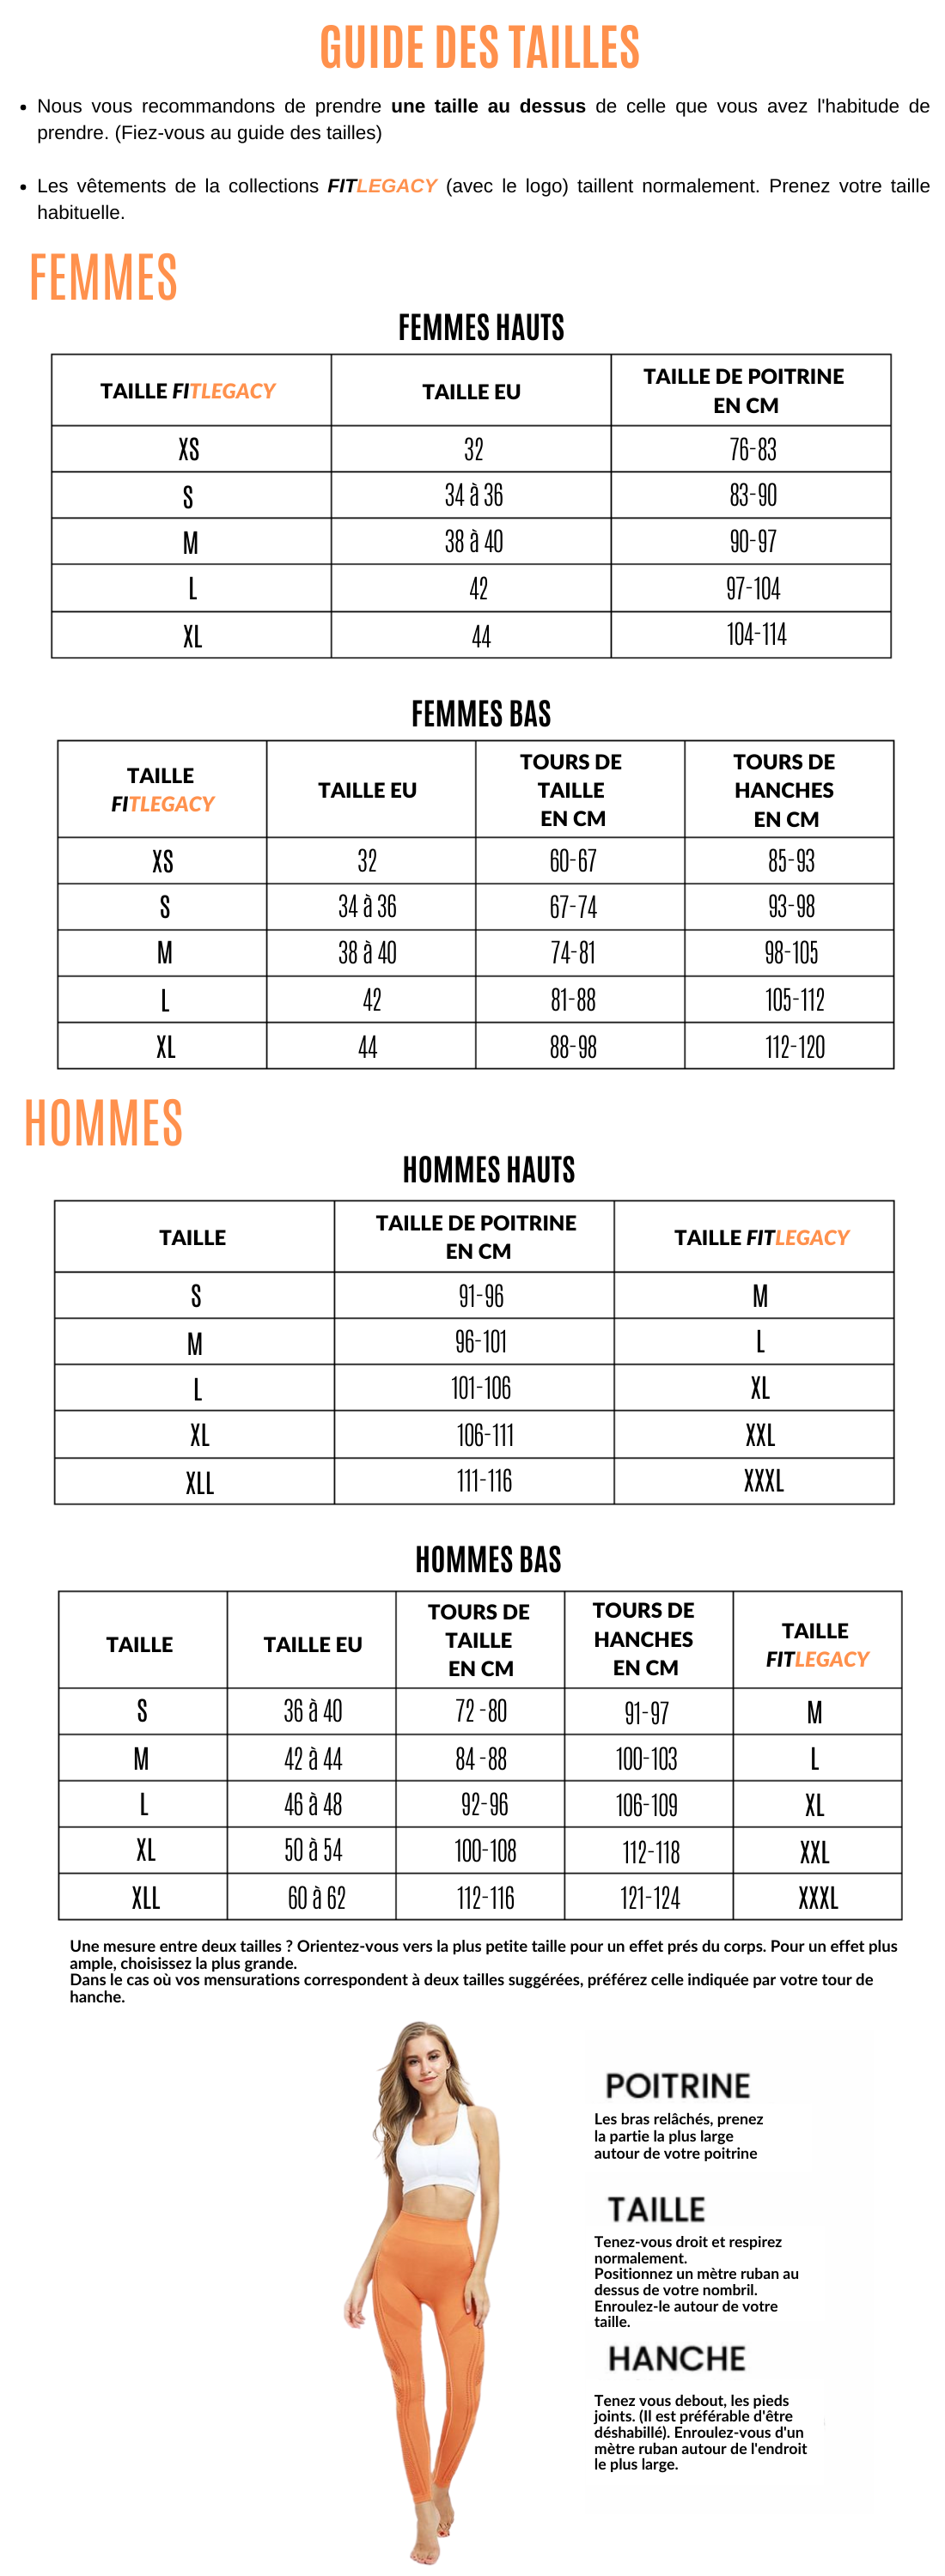 Guide des tailles FITLEGACY